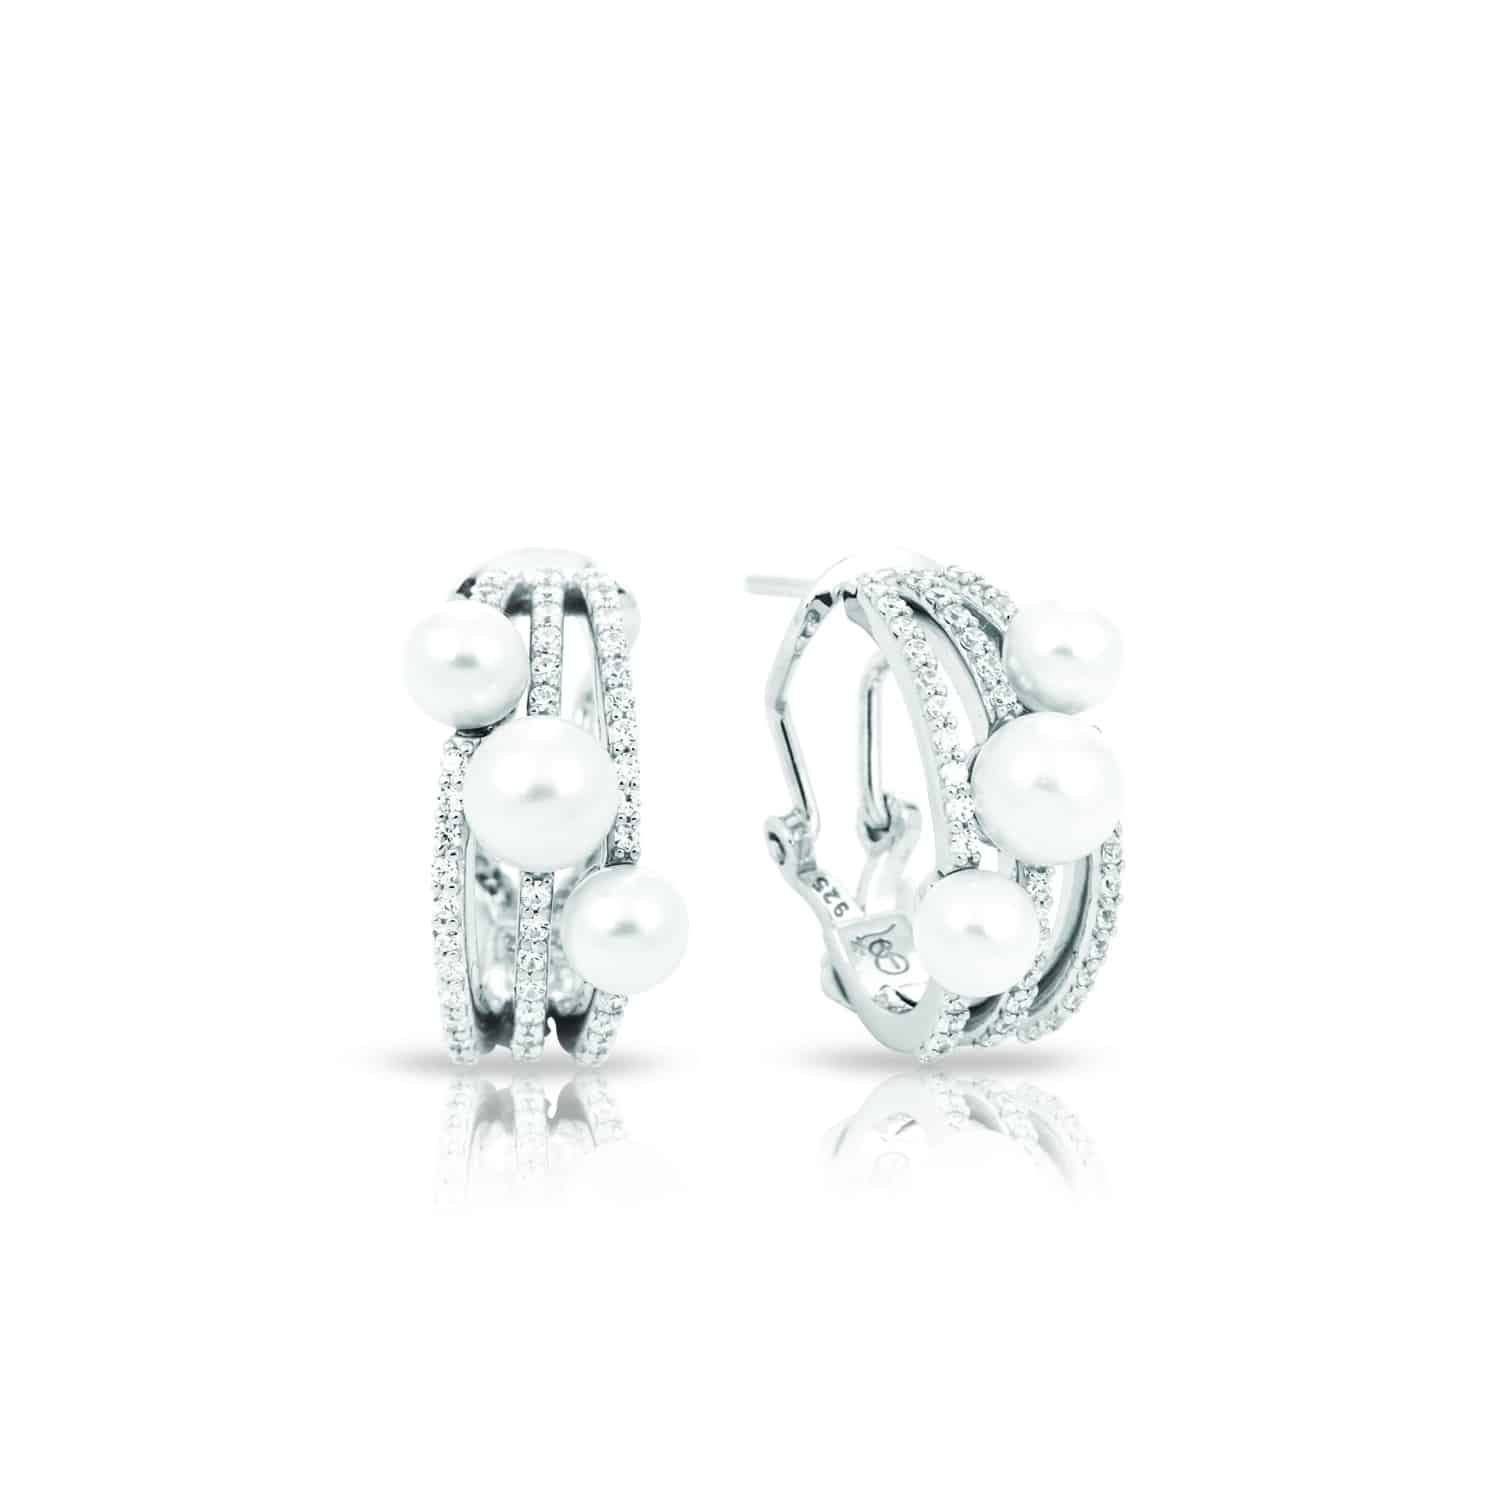 Belle Étoile Effervescence White Earrings